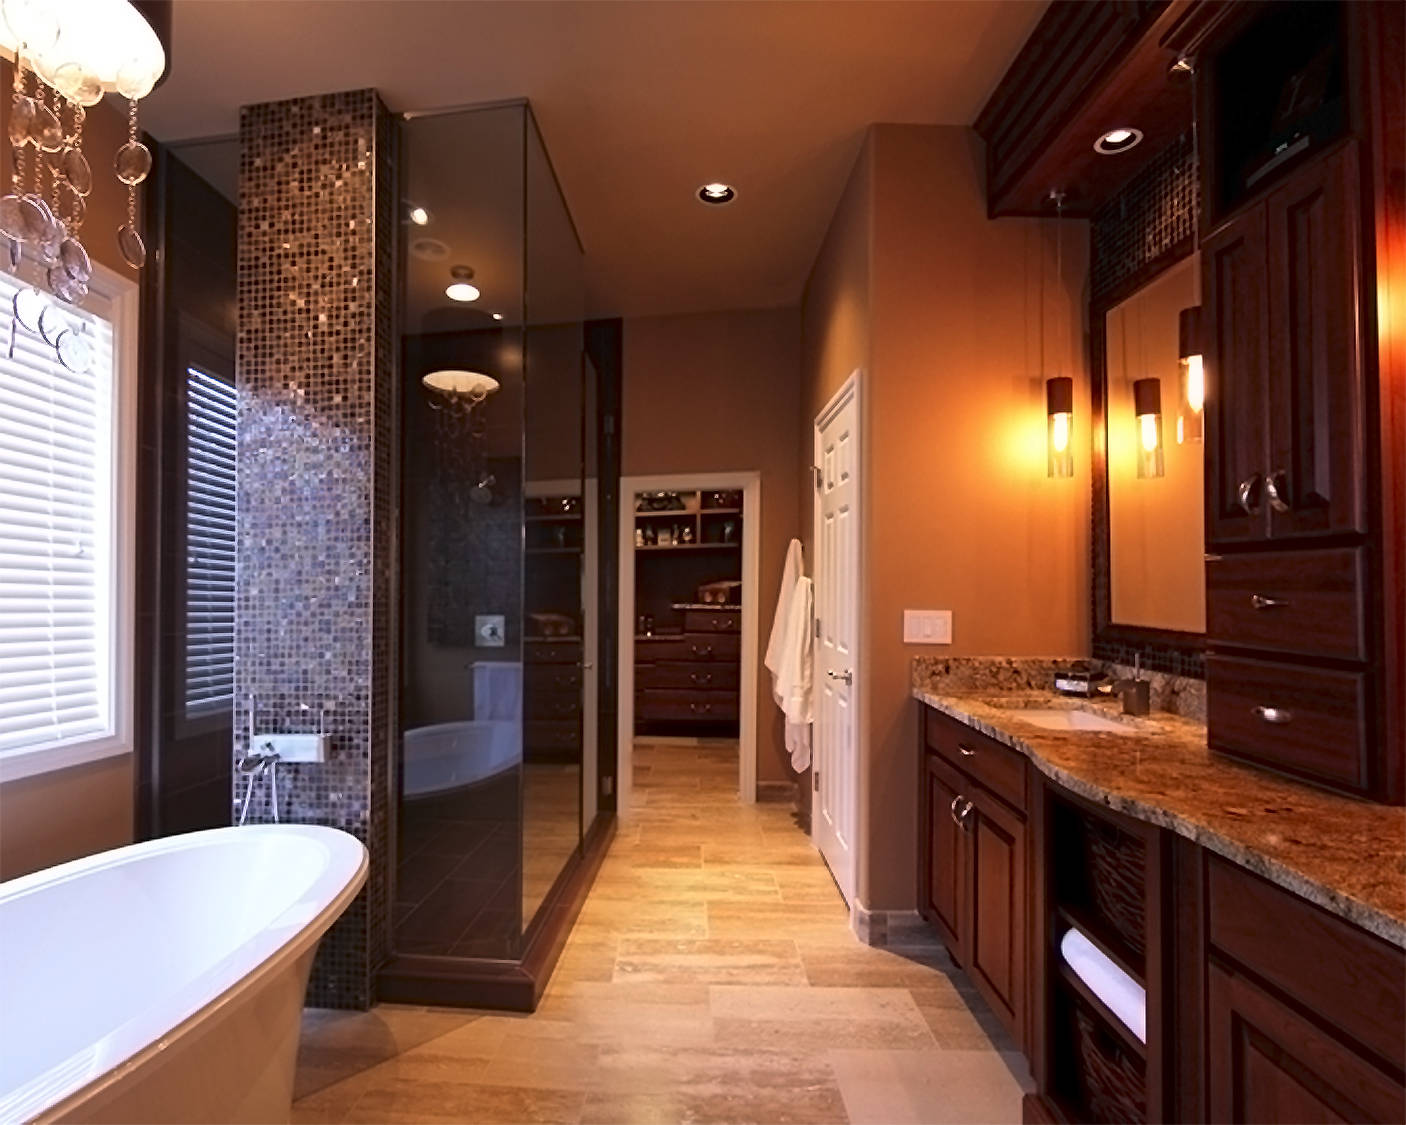 Selin construction bathroom remodel for Images of bathroom remodel ideas